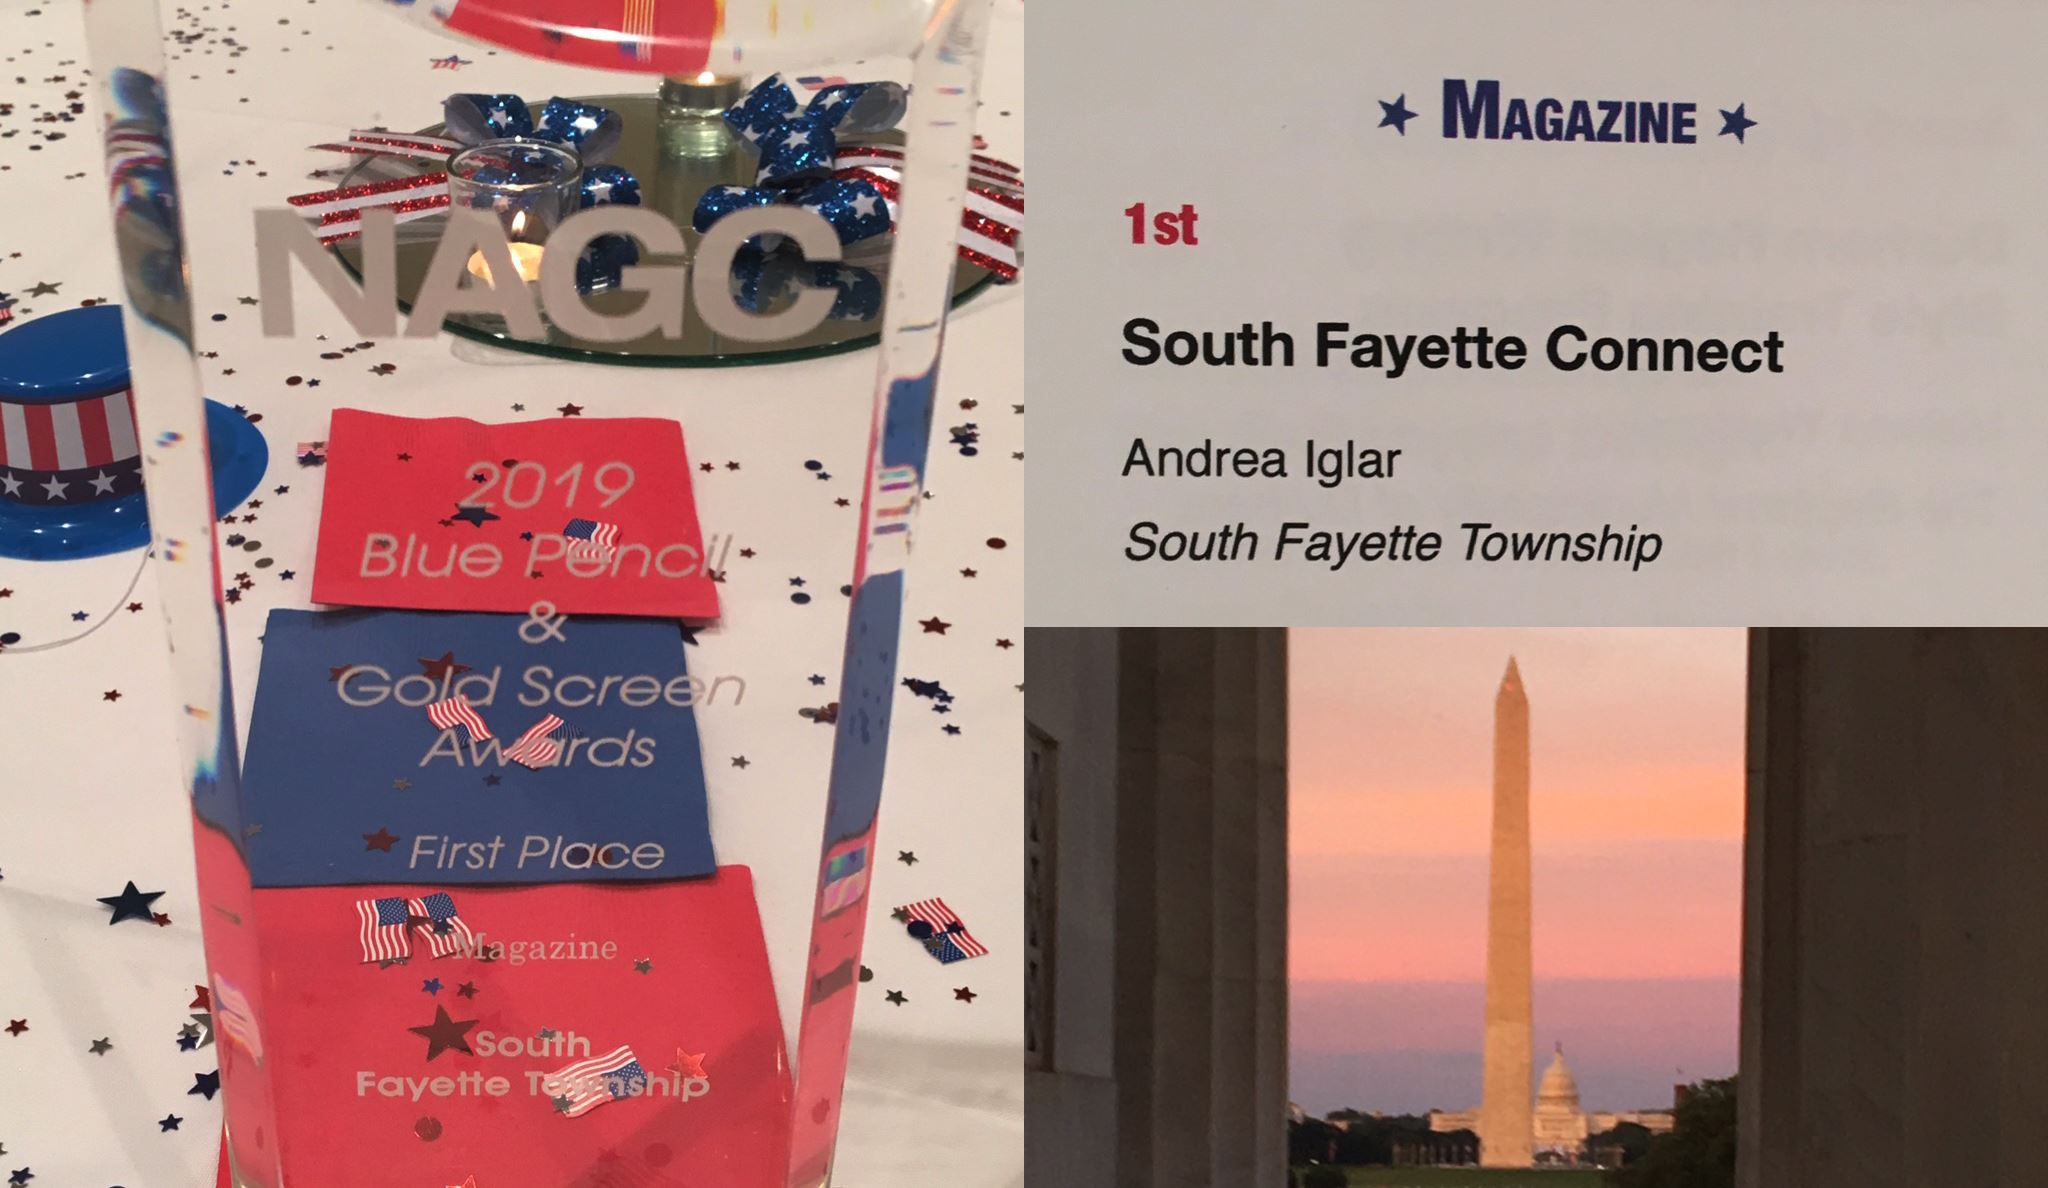 NAGC DC Awards Collage 2019